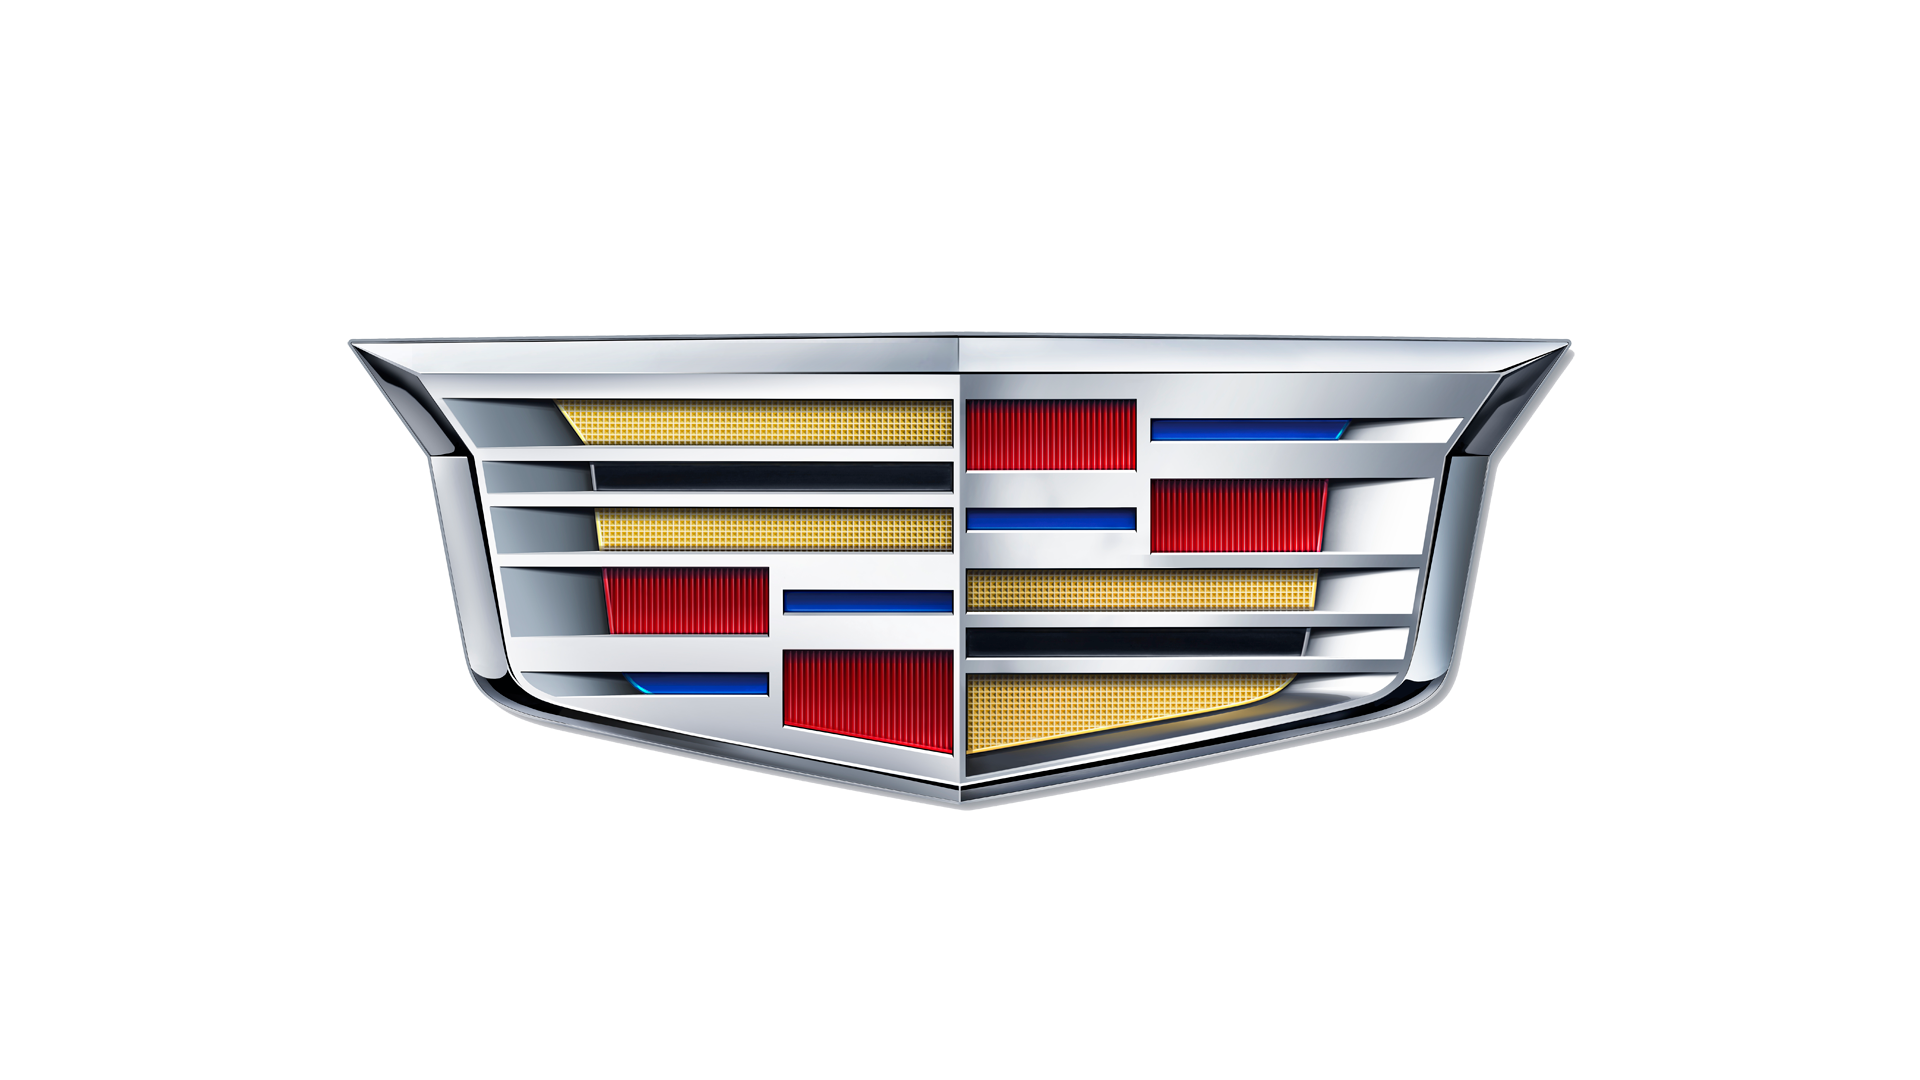 cadillac logo hd png meaning information cadillac logo hd png meaning information